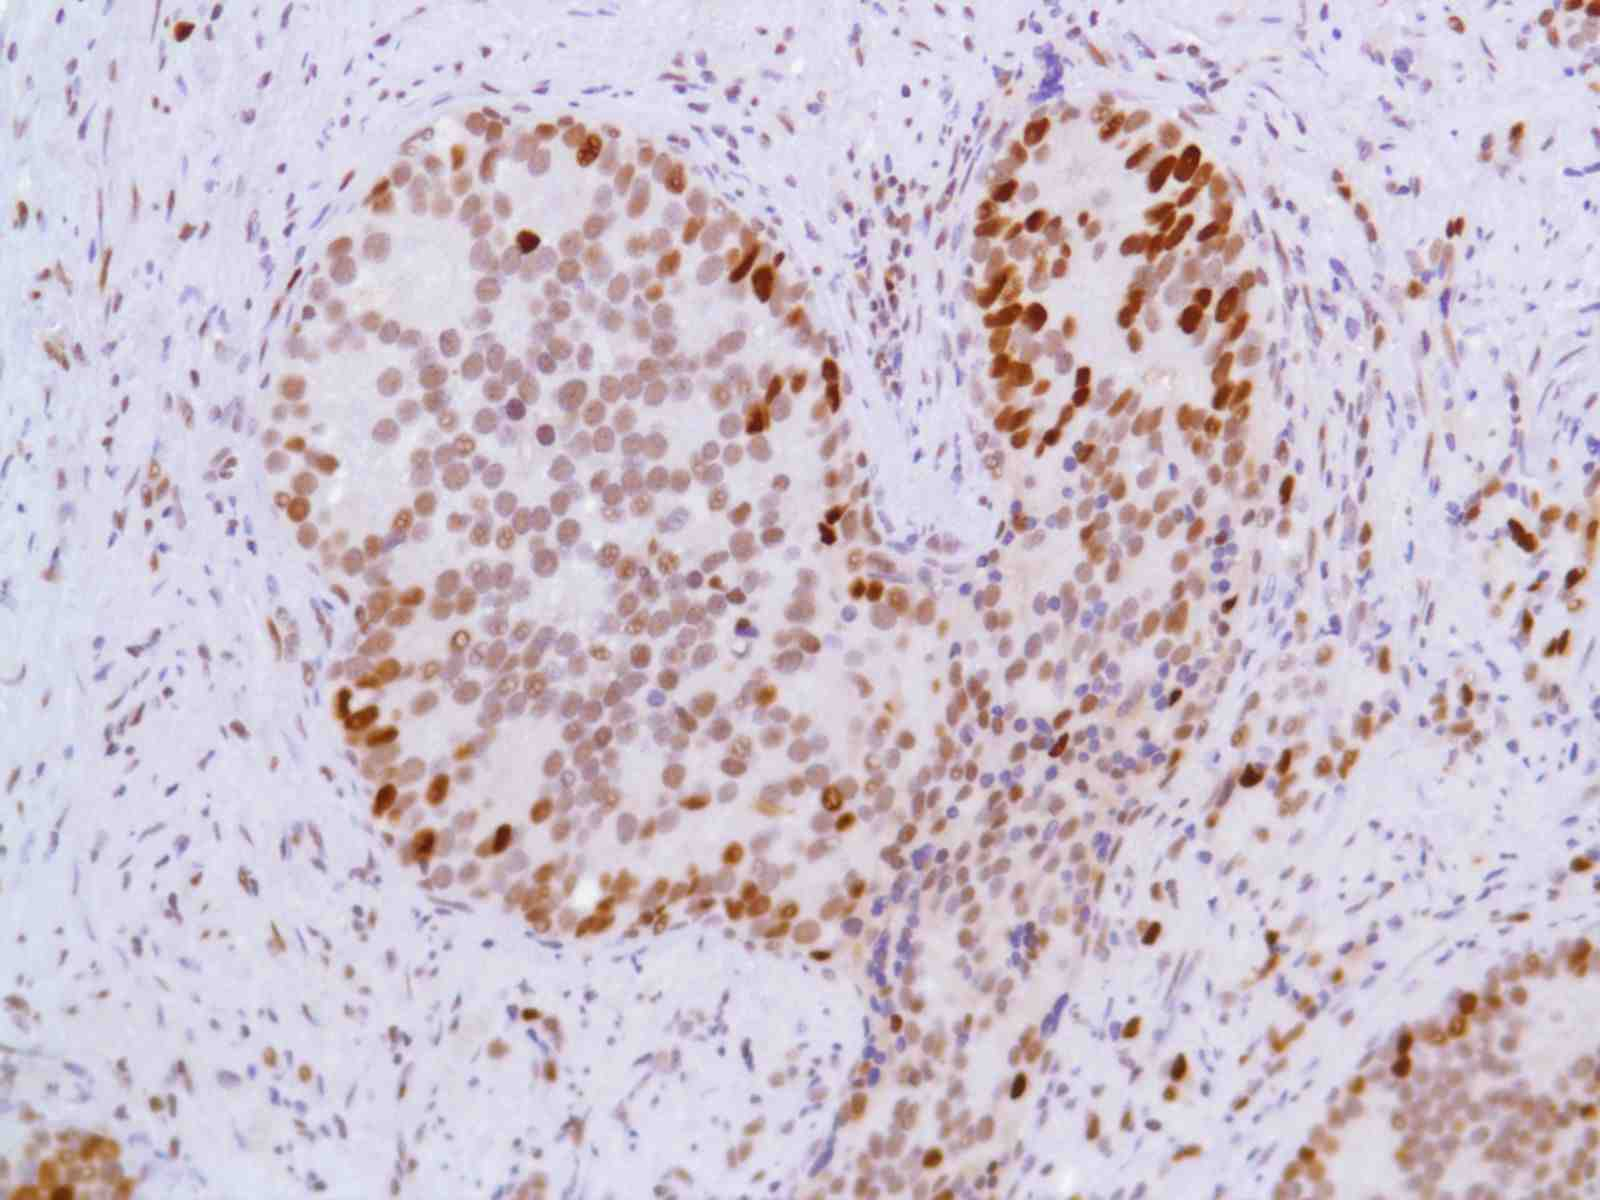 Human Prostate Adenocarcinoma stained with anti-MCM2 antibody